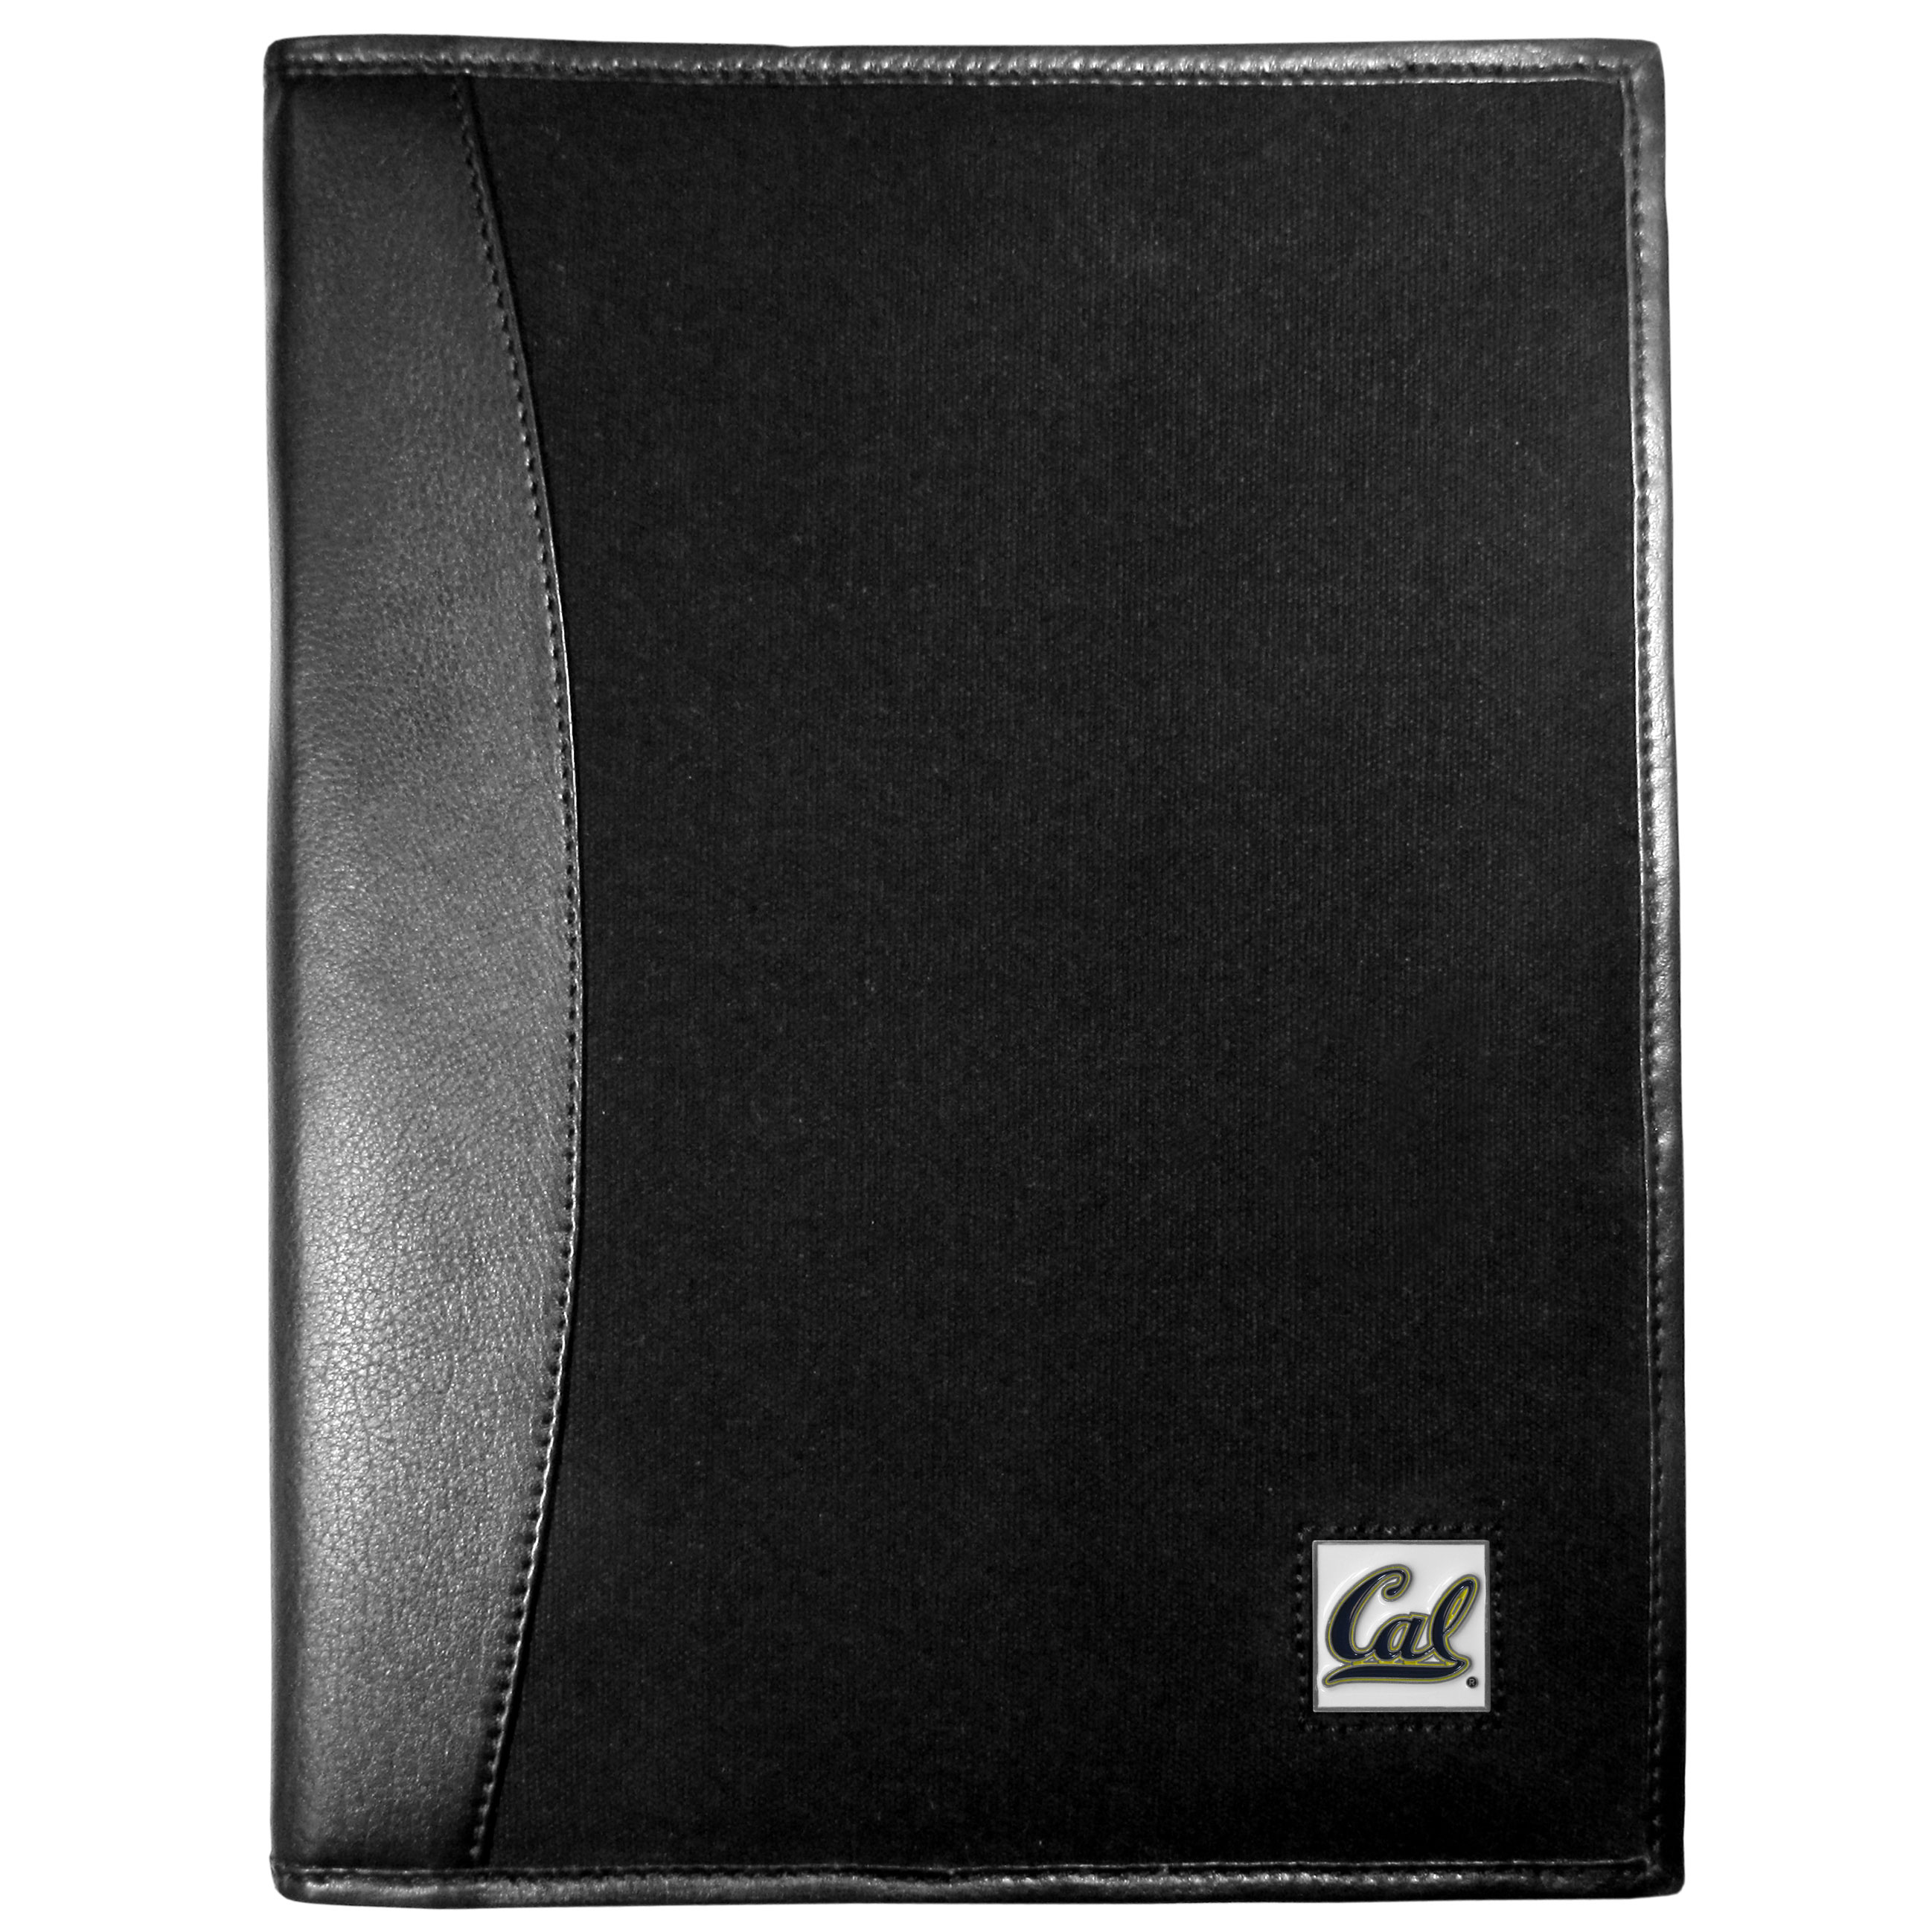 Cal Berkeley Bears Leather and Canvas Padfolio - Our leather and canvas padfolio perfectly blends form and function. The attractive portfolio is bound in fine grain leather with an attractive canvas finish and the interior is a soft nylon. This high quality business accessory also features a fully cast metal Cal Berkeley Bears emblem that is subtly set in the corner of the organizer. It is packed with features like 6 card slots for badges, business cards, hotel keys or credit cards and ID with a large pocket for loose papers and a writing tablet slot making it a must-have for the professional on the go.